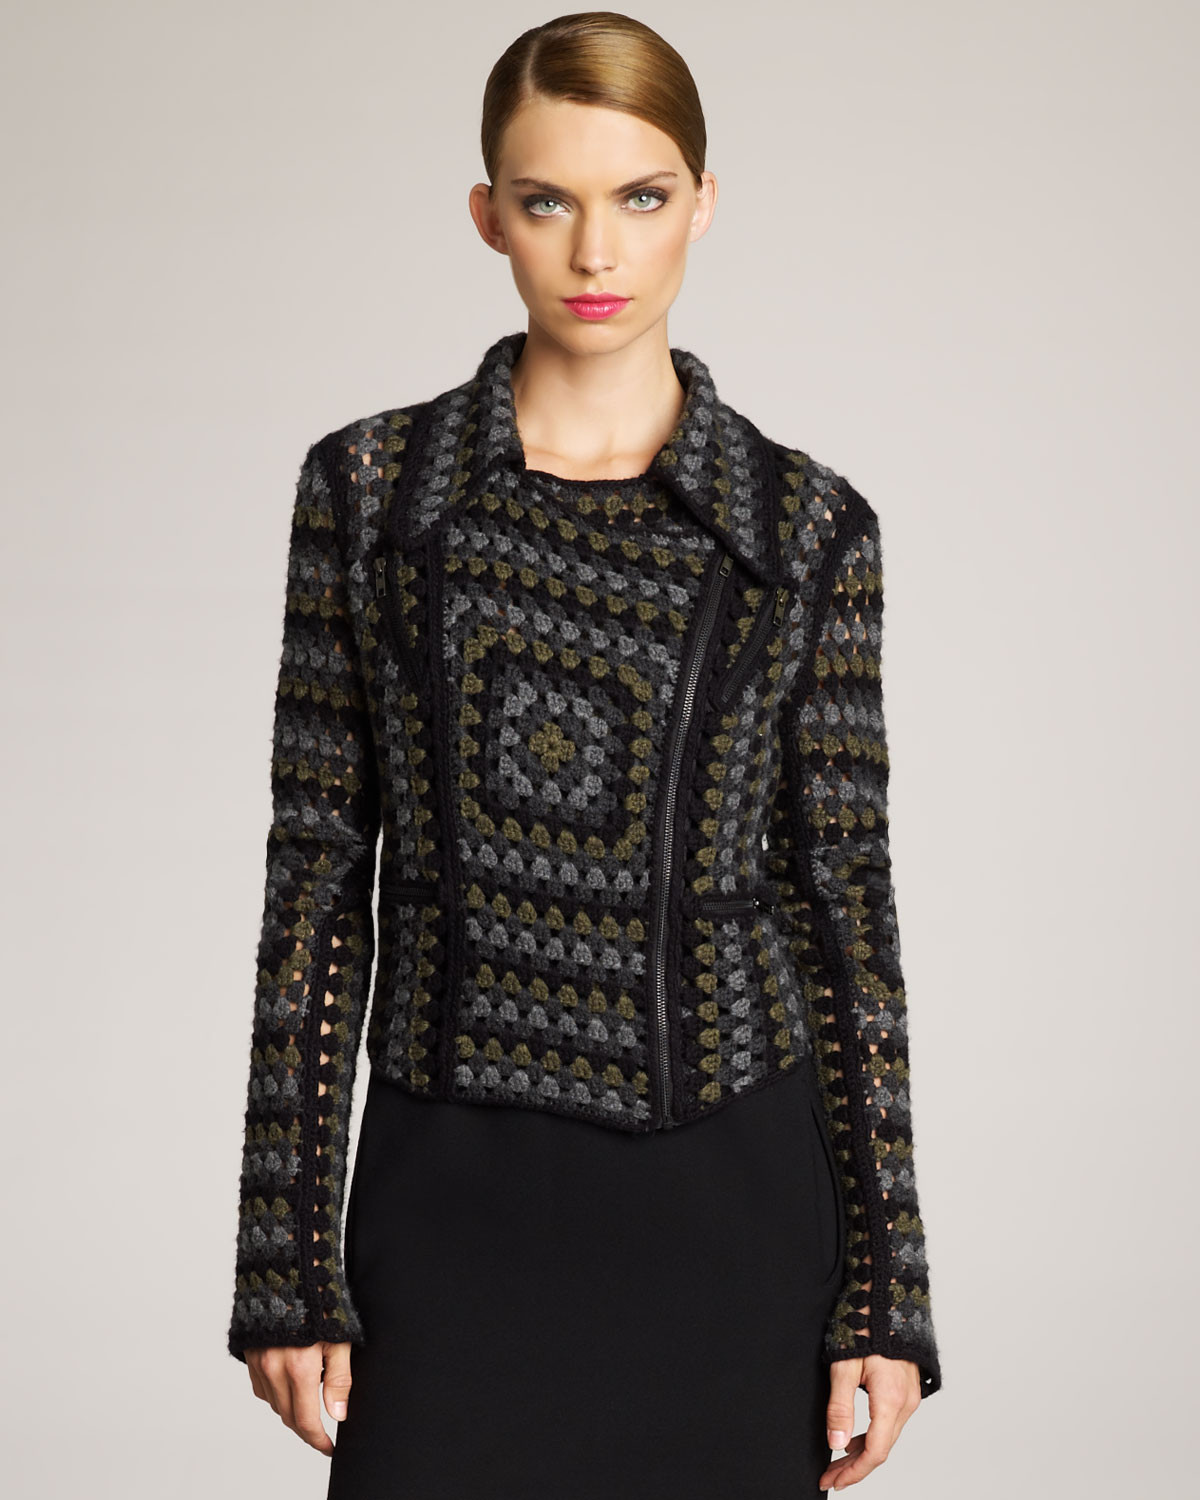 Crochet Jacket New Christopher Kane Cashmere Crochet Jacket In Gray Of Charming 45 Pictures Crochet Jacket